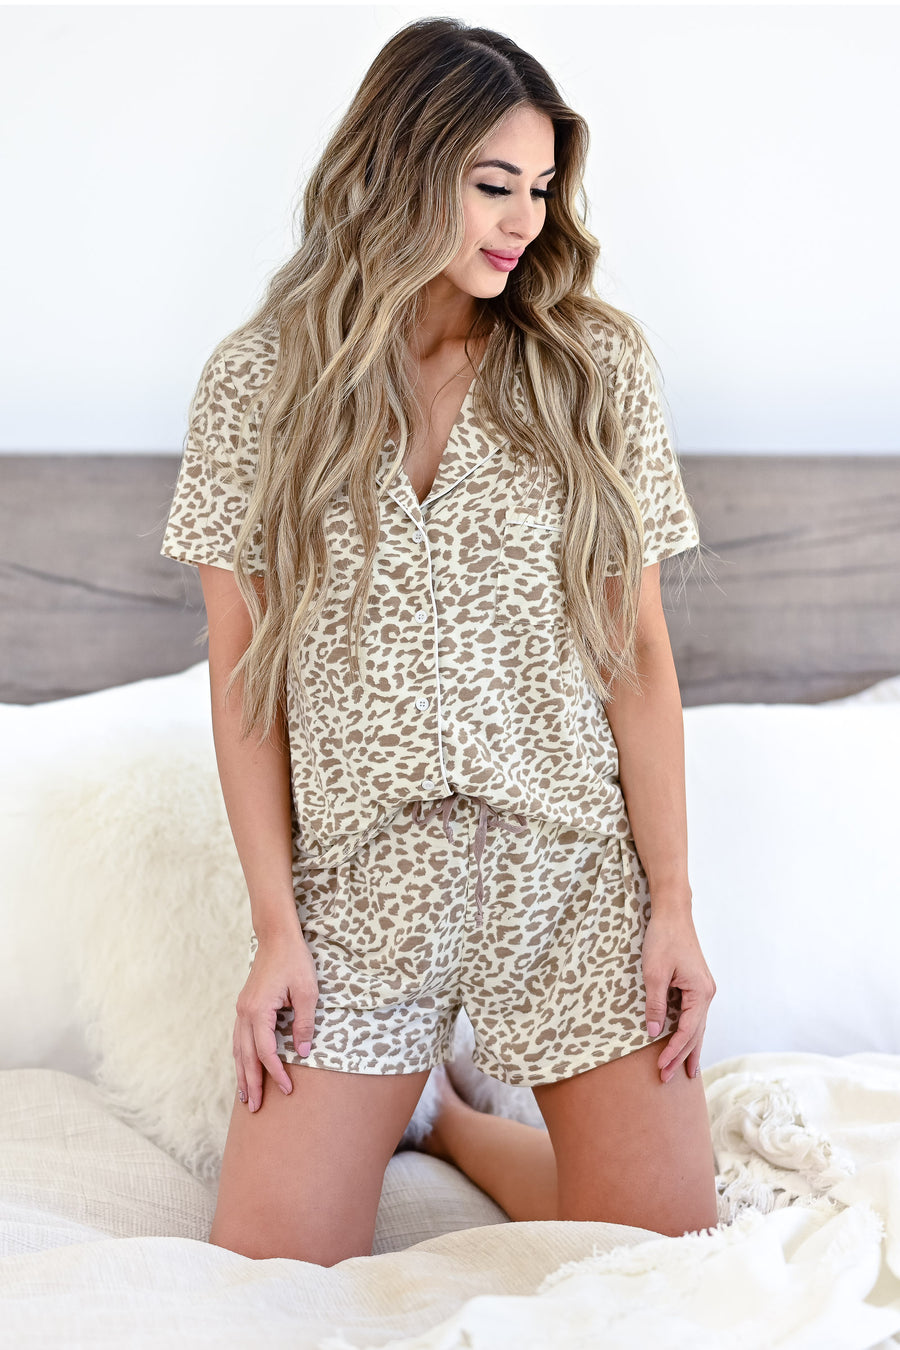 Sleep Well Leopard Pajamas - Ivory & Taupe womens casual button up pajama set closet candy front